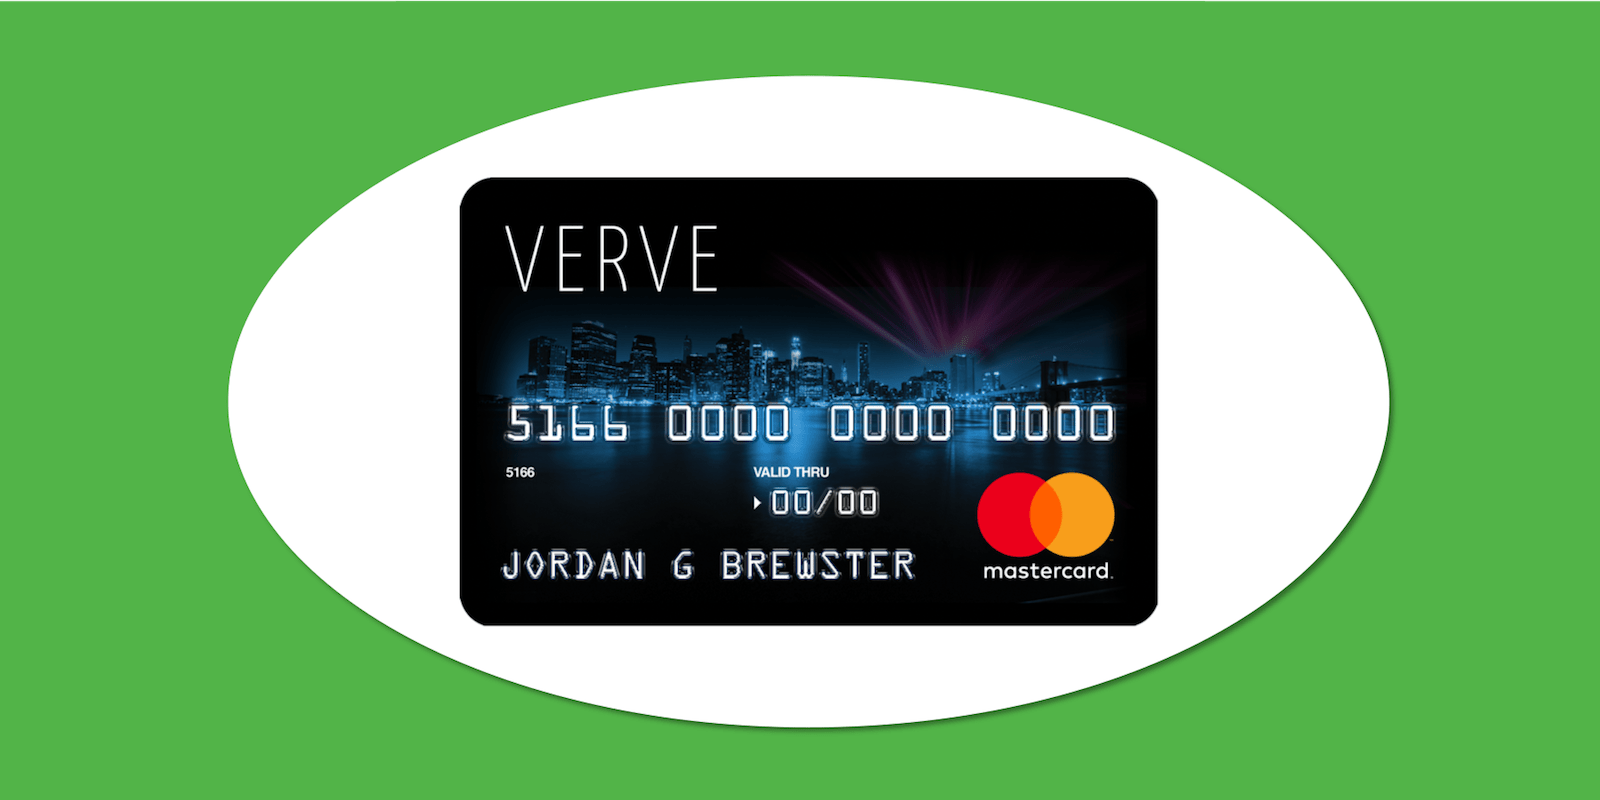 Verve Credit Card Review - Feature